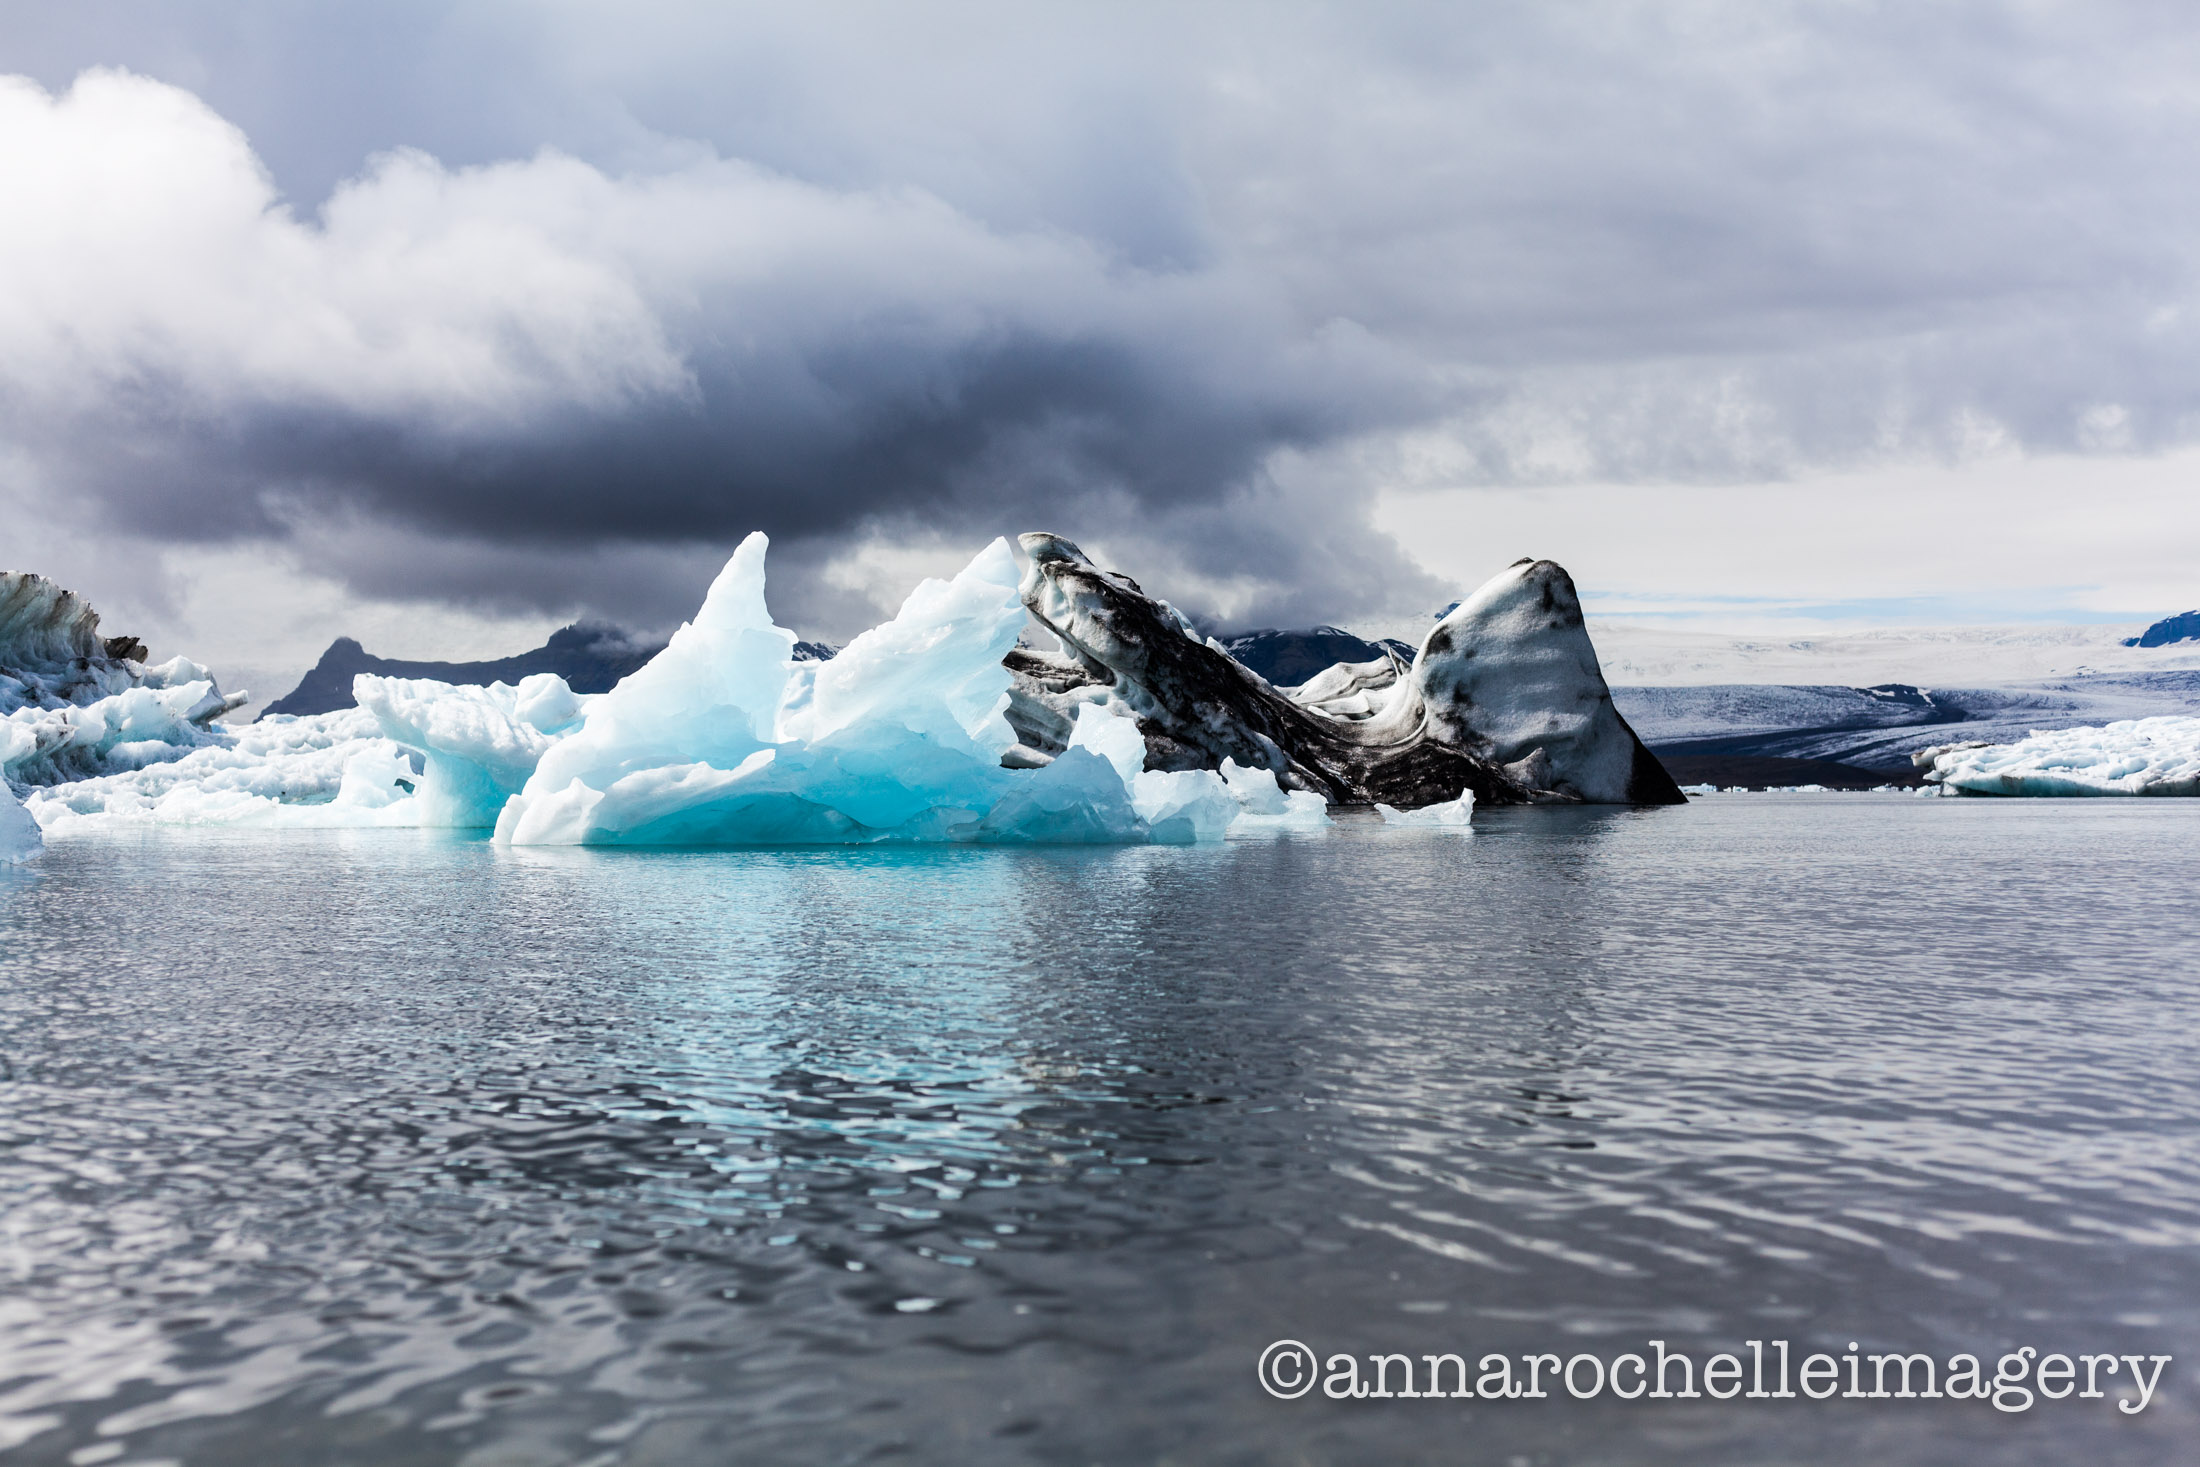 dark-light-ice-lagoon-iceland-iceberg-anna-rochelle-imagery-gorgeous.jpg